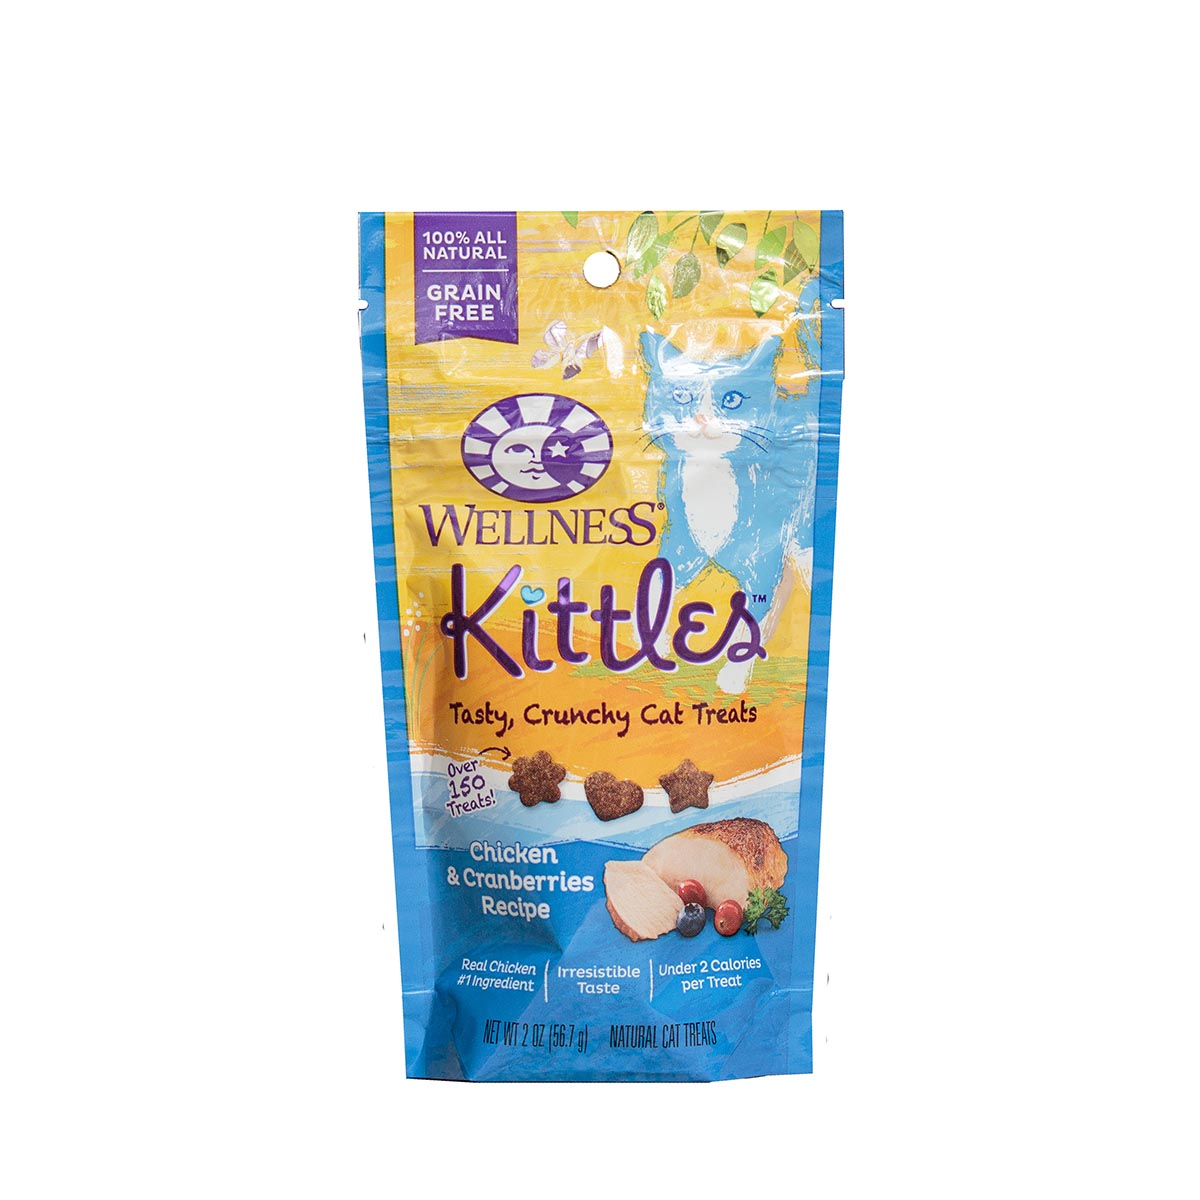 Kittles Cat Treats, Chicken & Cranberries Recipe